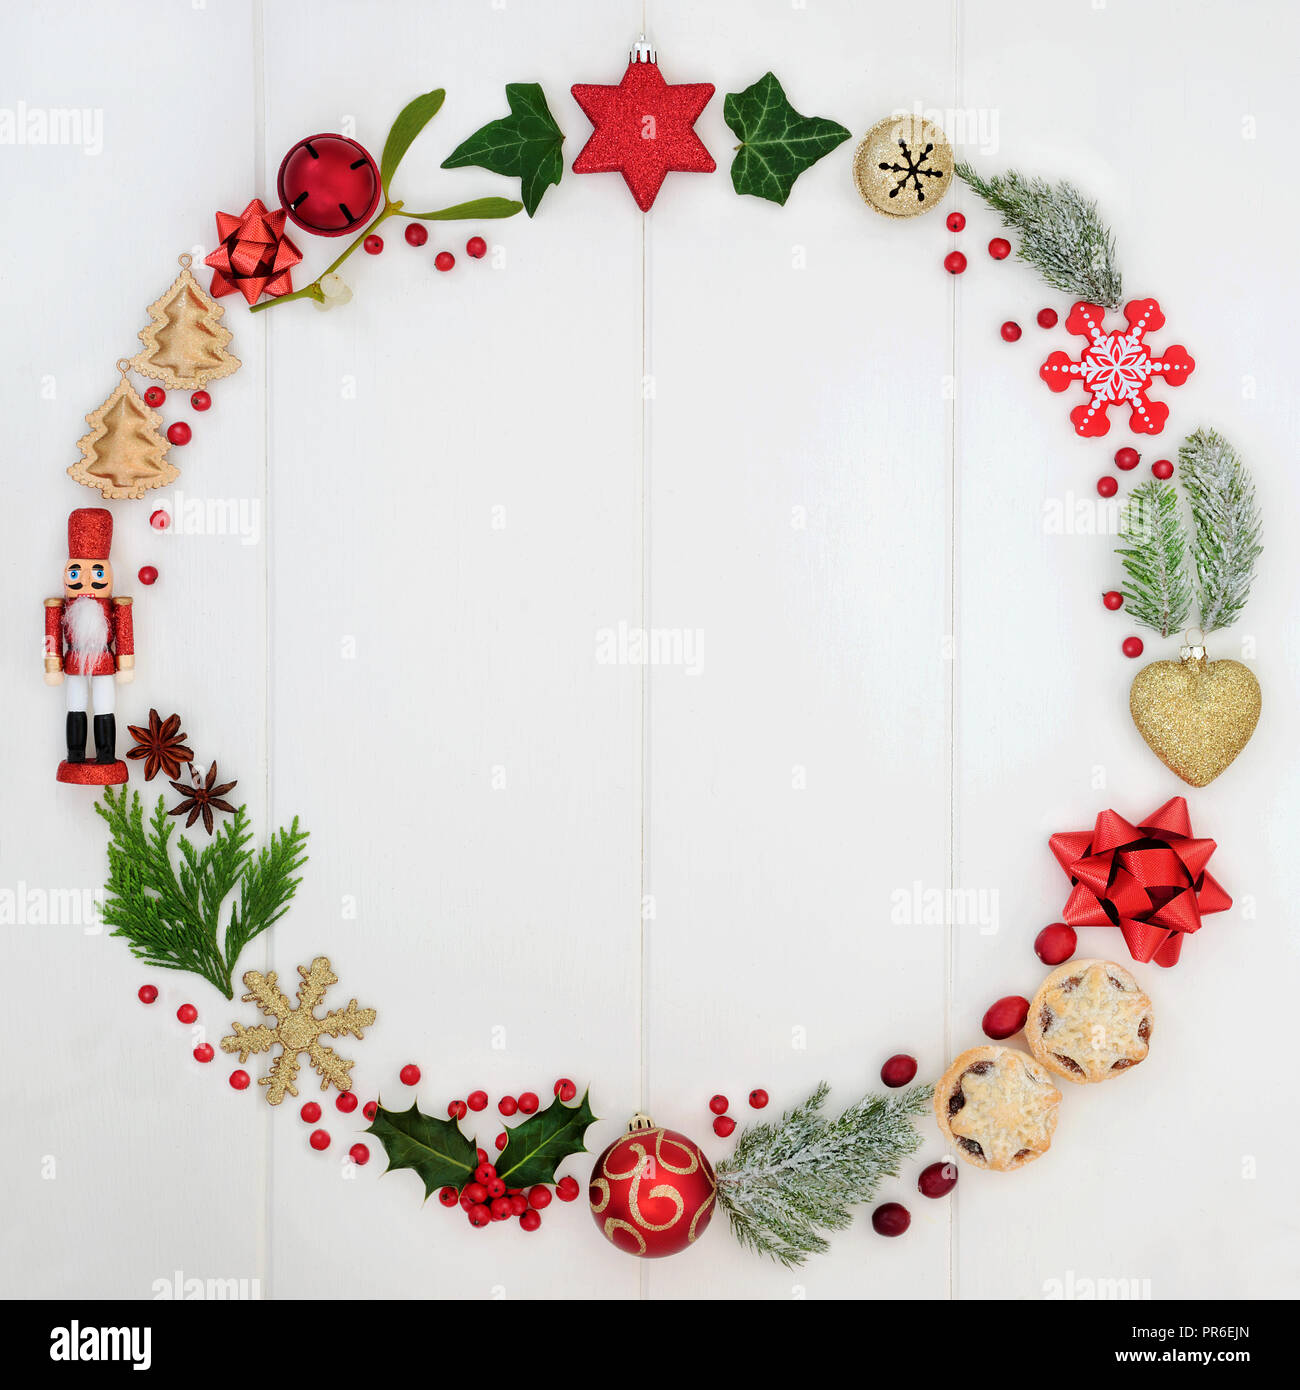 Abstract Christmas wreath garland with a selection of traditional symbols including food, flora and bauble decorations on rustic white wood background - Stock Image